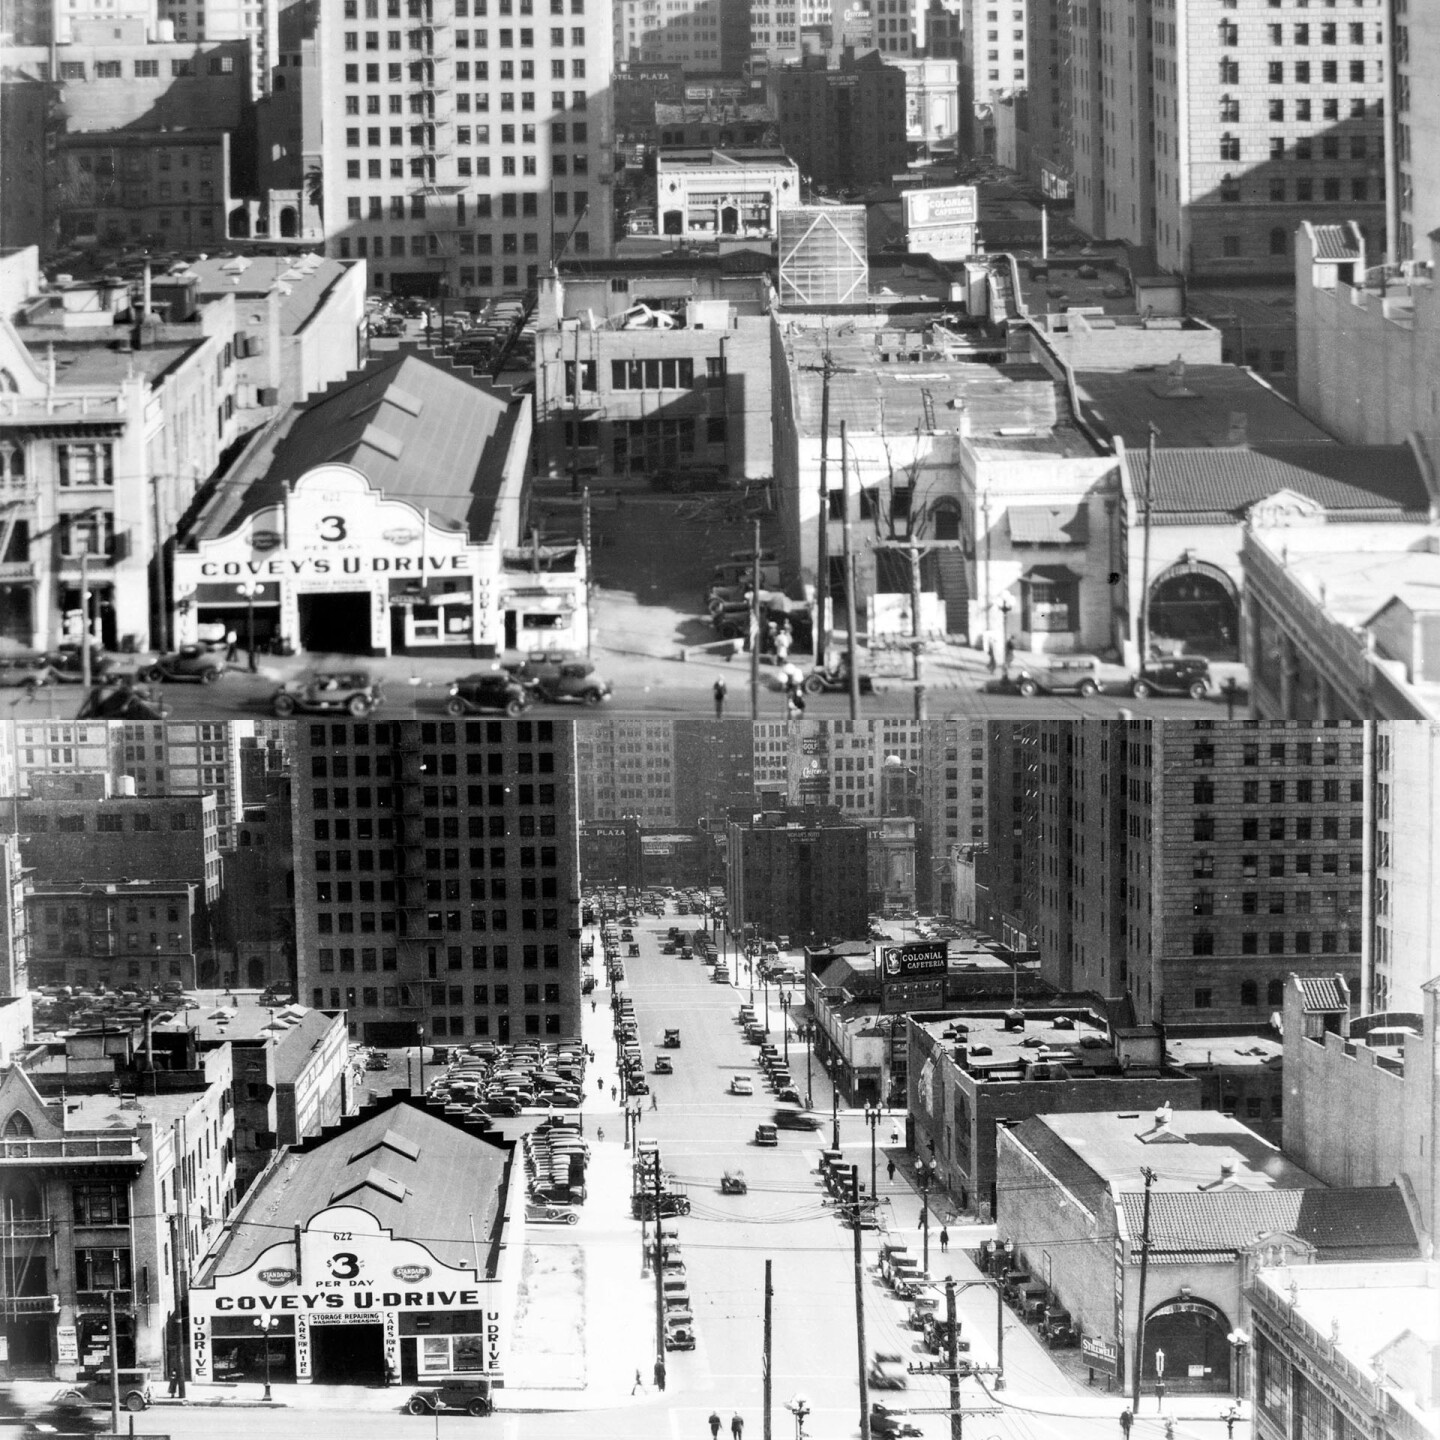 Between 1930 and 1931, the city extended Wilshire Boulevard three blocks into downtown Los Angeles, from Figueroa to Grand. 1930 and 1934 photographs courtesy of the USC Libraries - California Historical Society Collection.